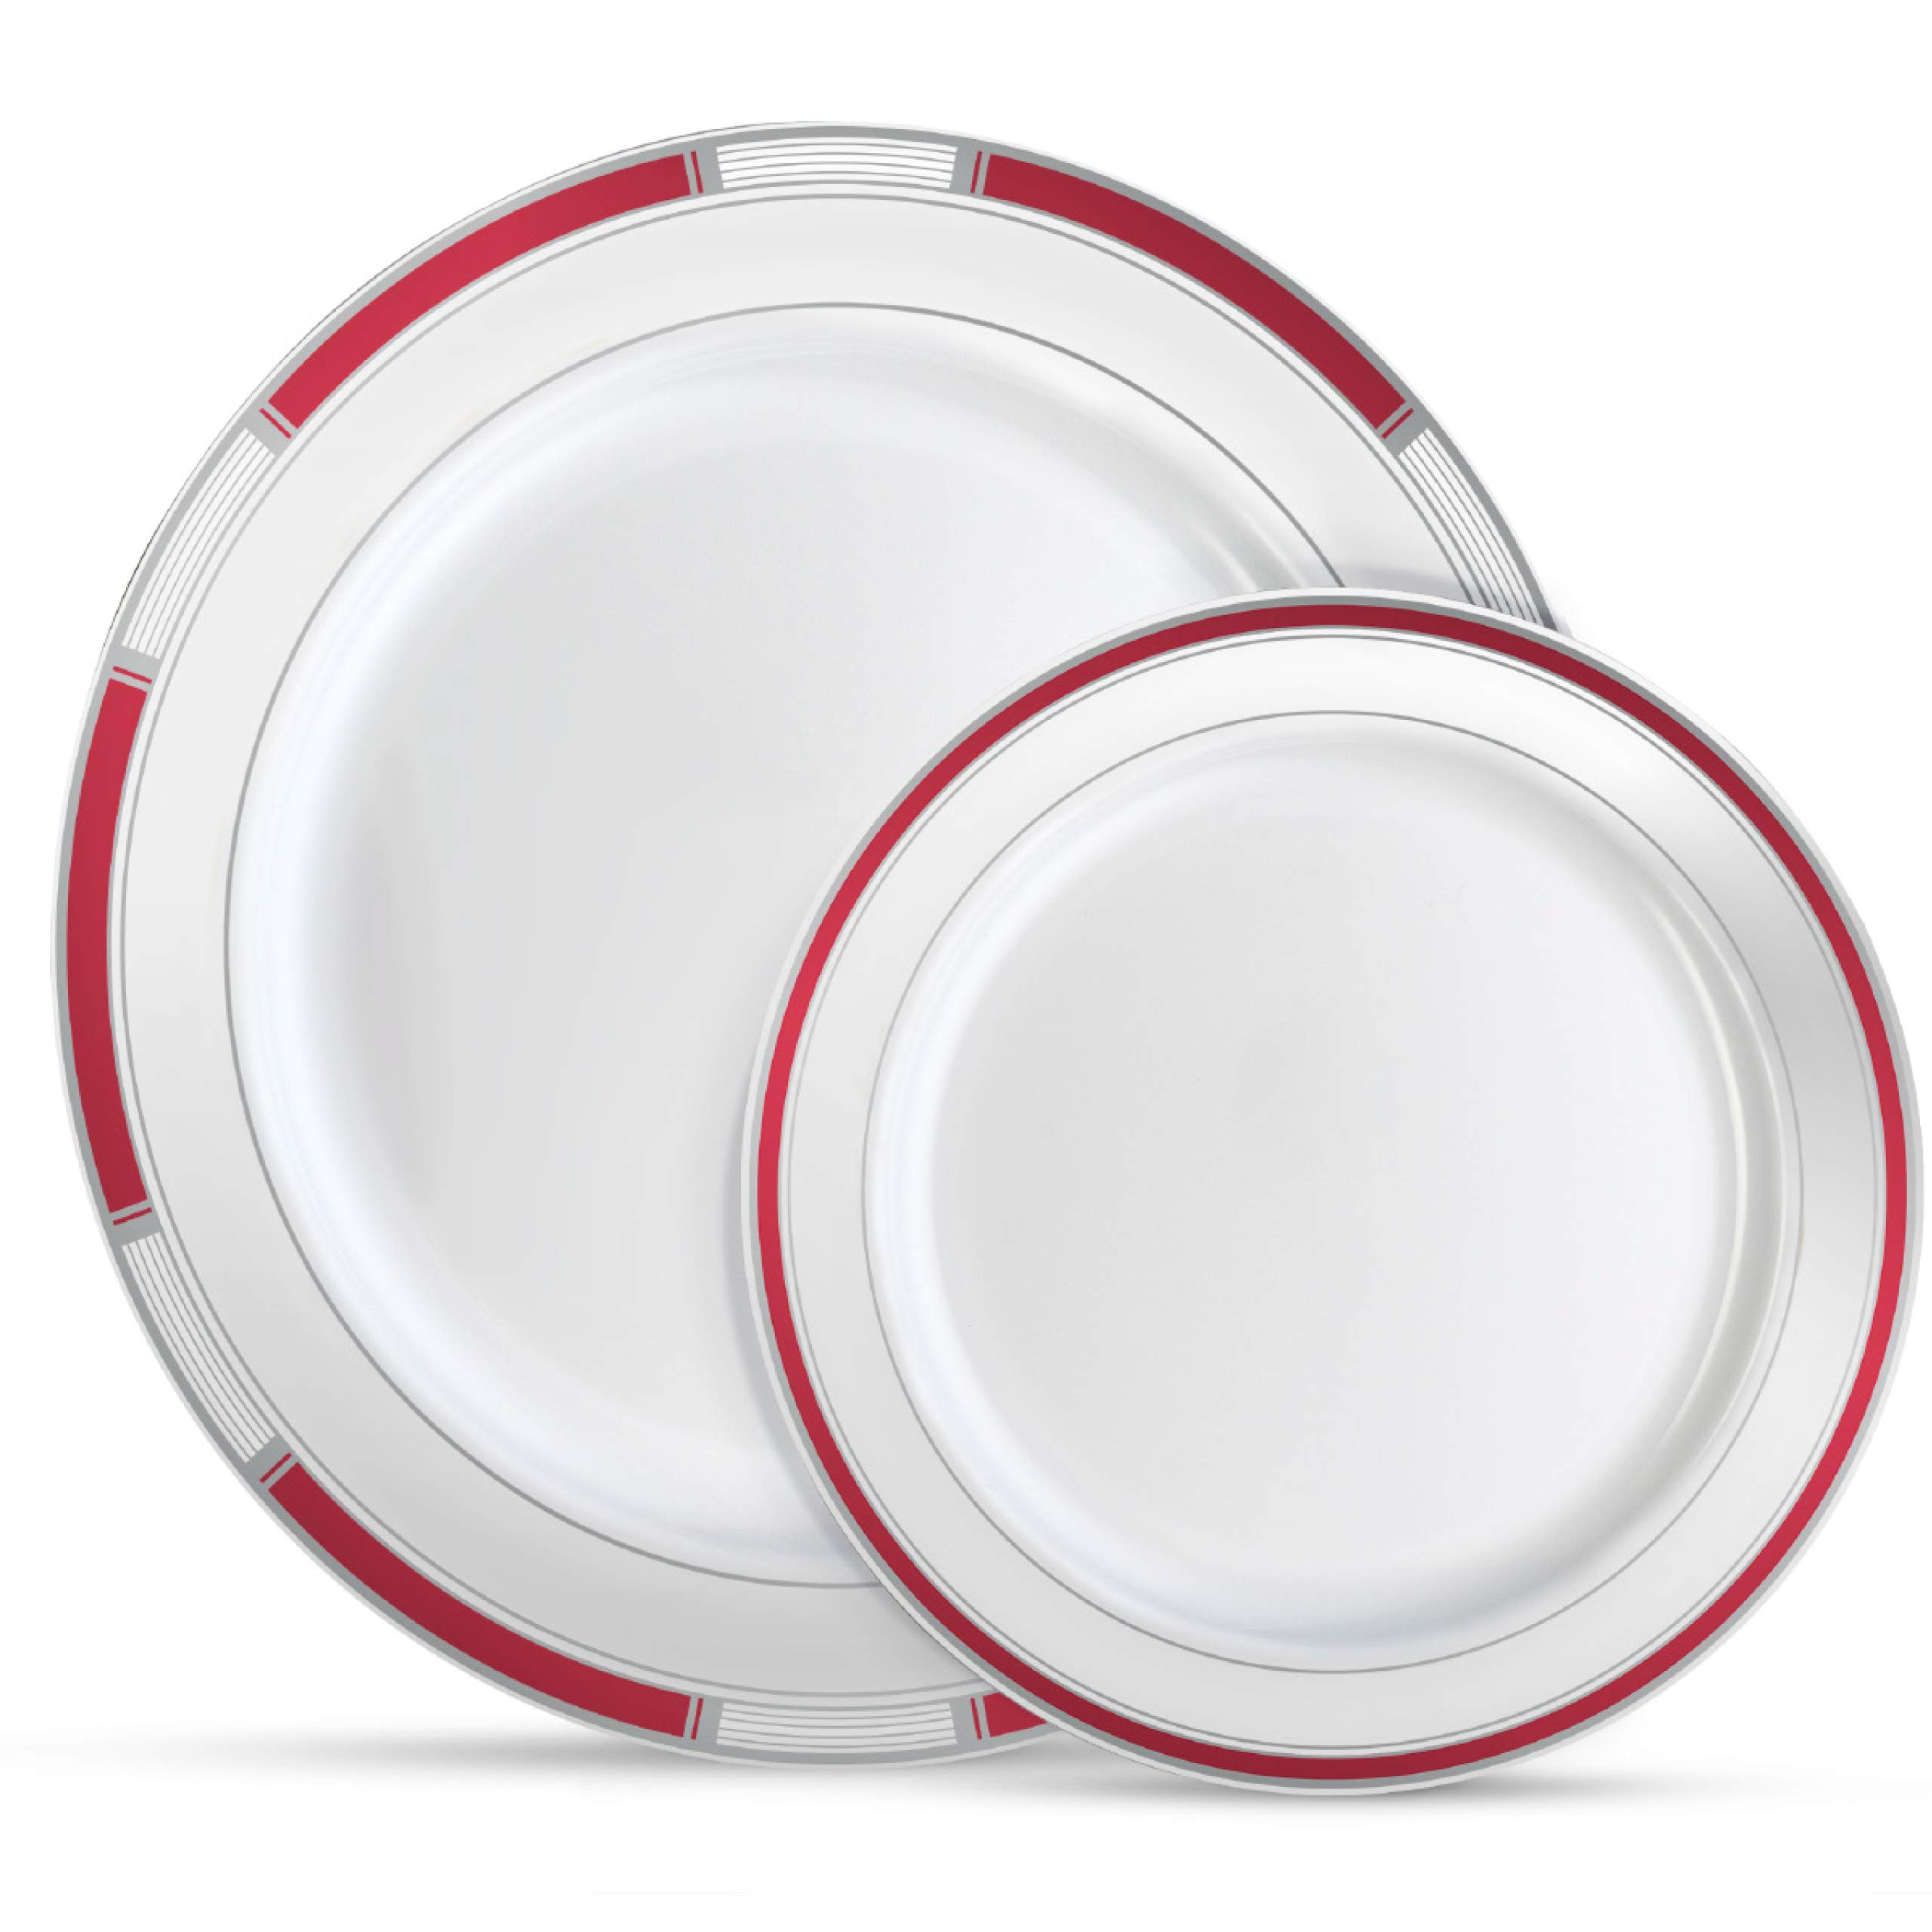 "Laura Stein Designer Dinnerware Set | 32 Disposable Plastic Party Plates | Plates with Burgandy Rim & Silver Accents | Includes 16 x 10.75"" Dinner Plates + 16 x 7.5"" Salad Plates 